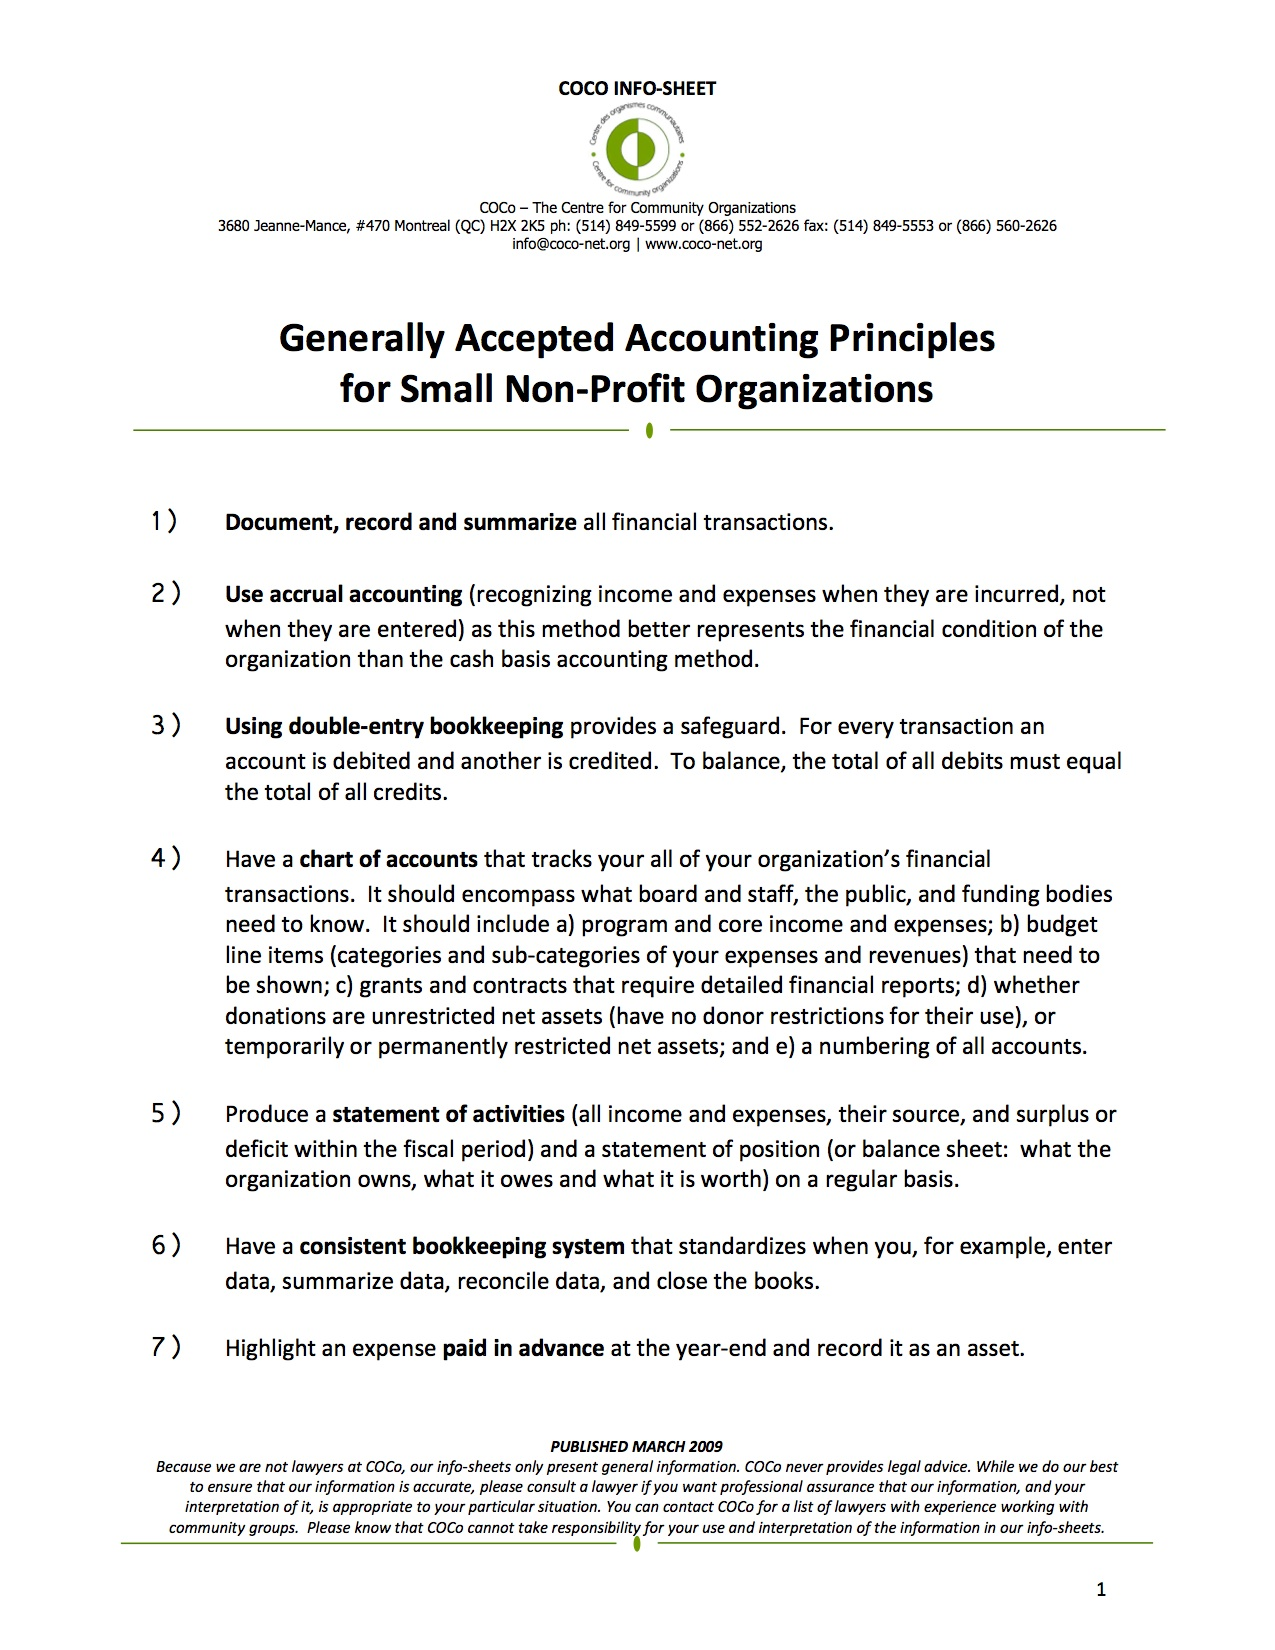 Generally Accepted Accounting Principles for Small Non